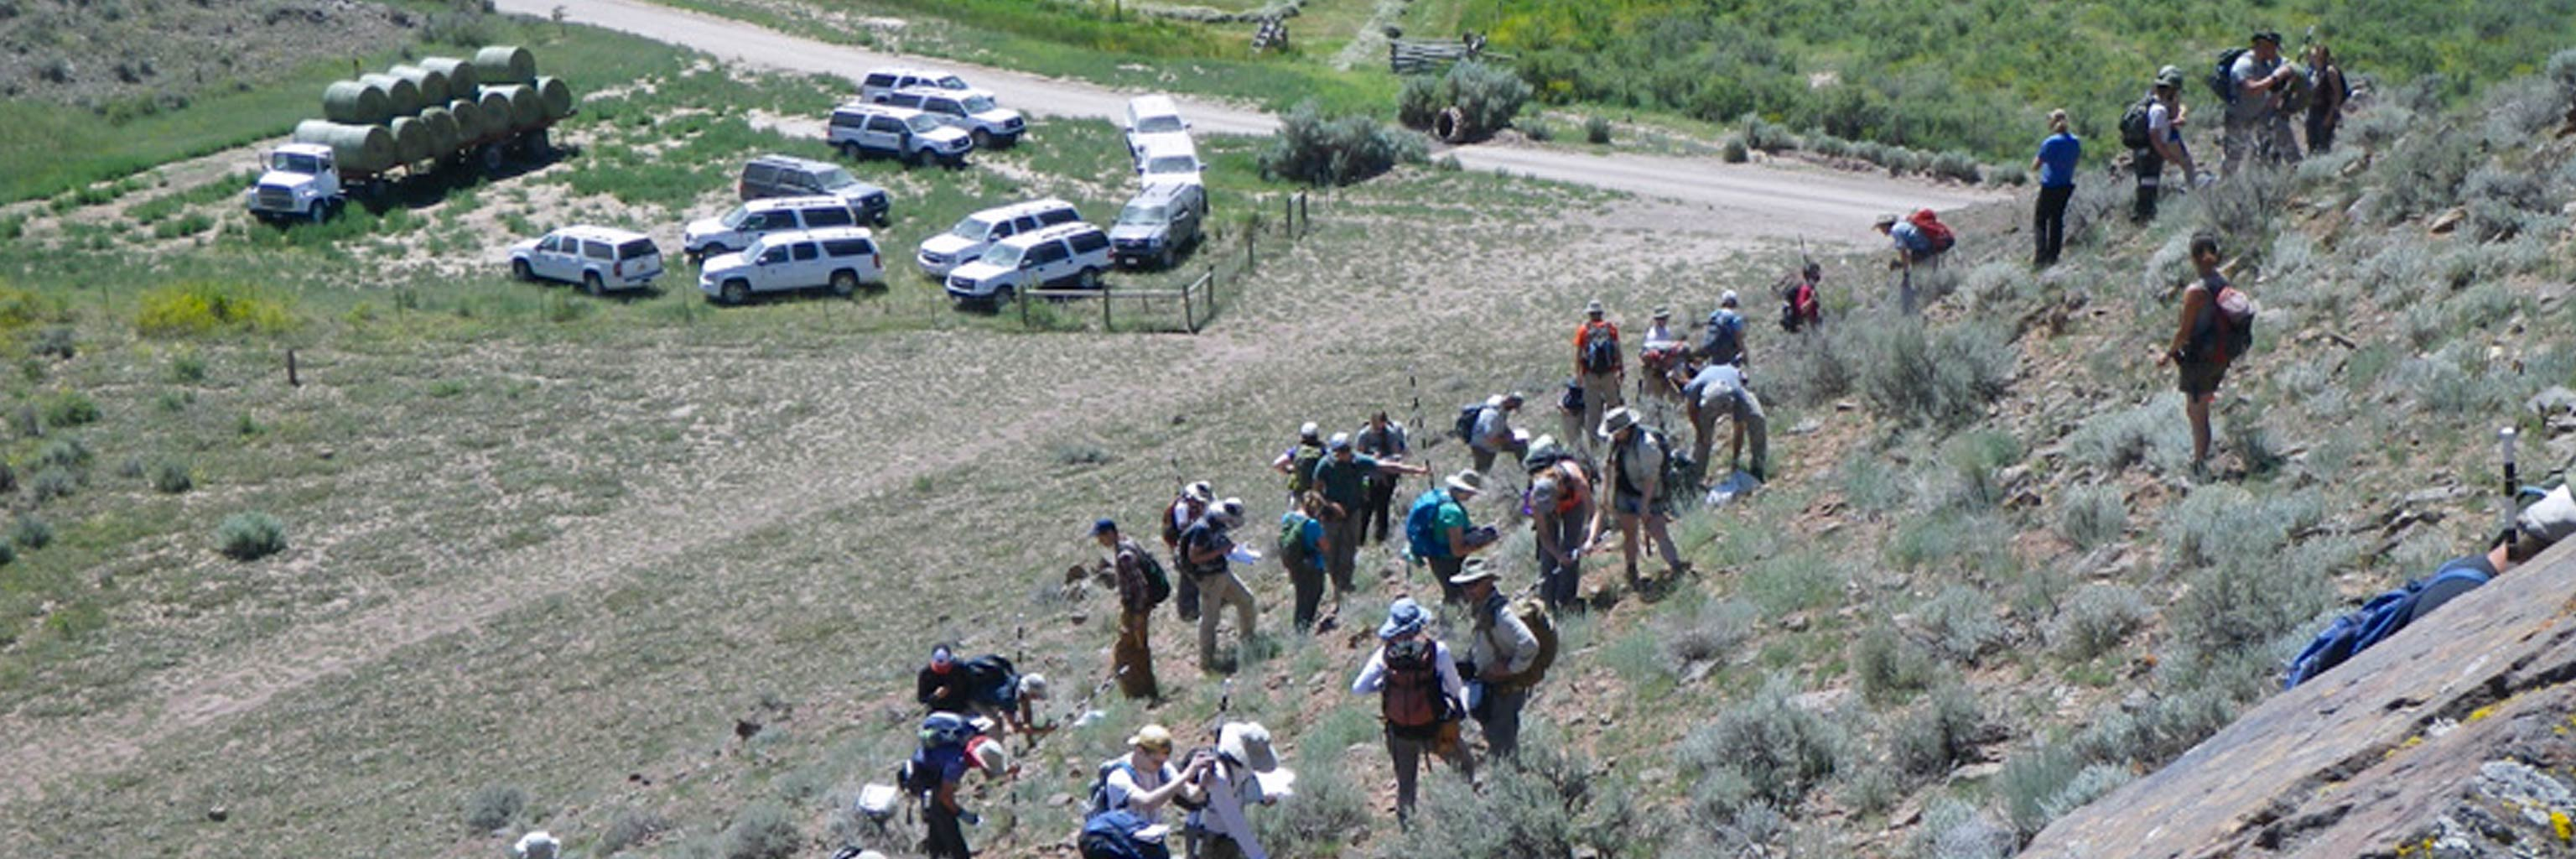 students start the climb up a hill